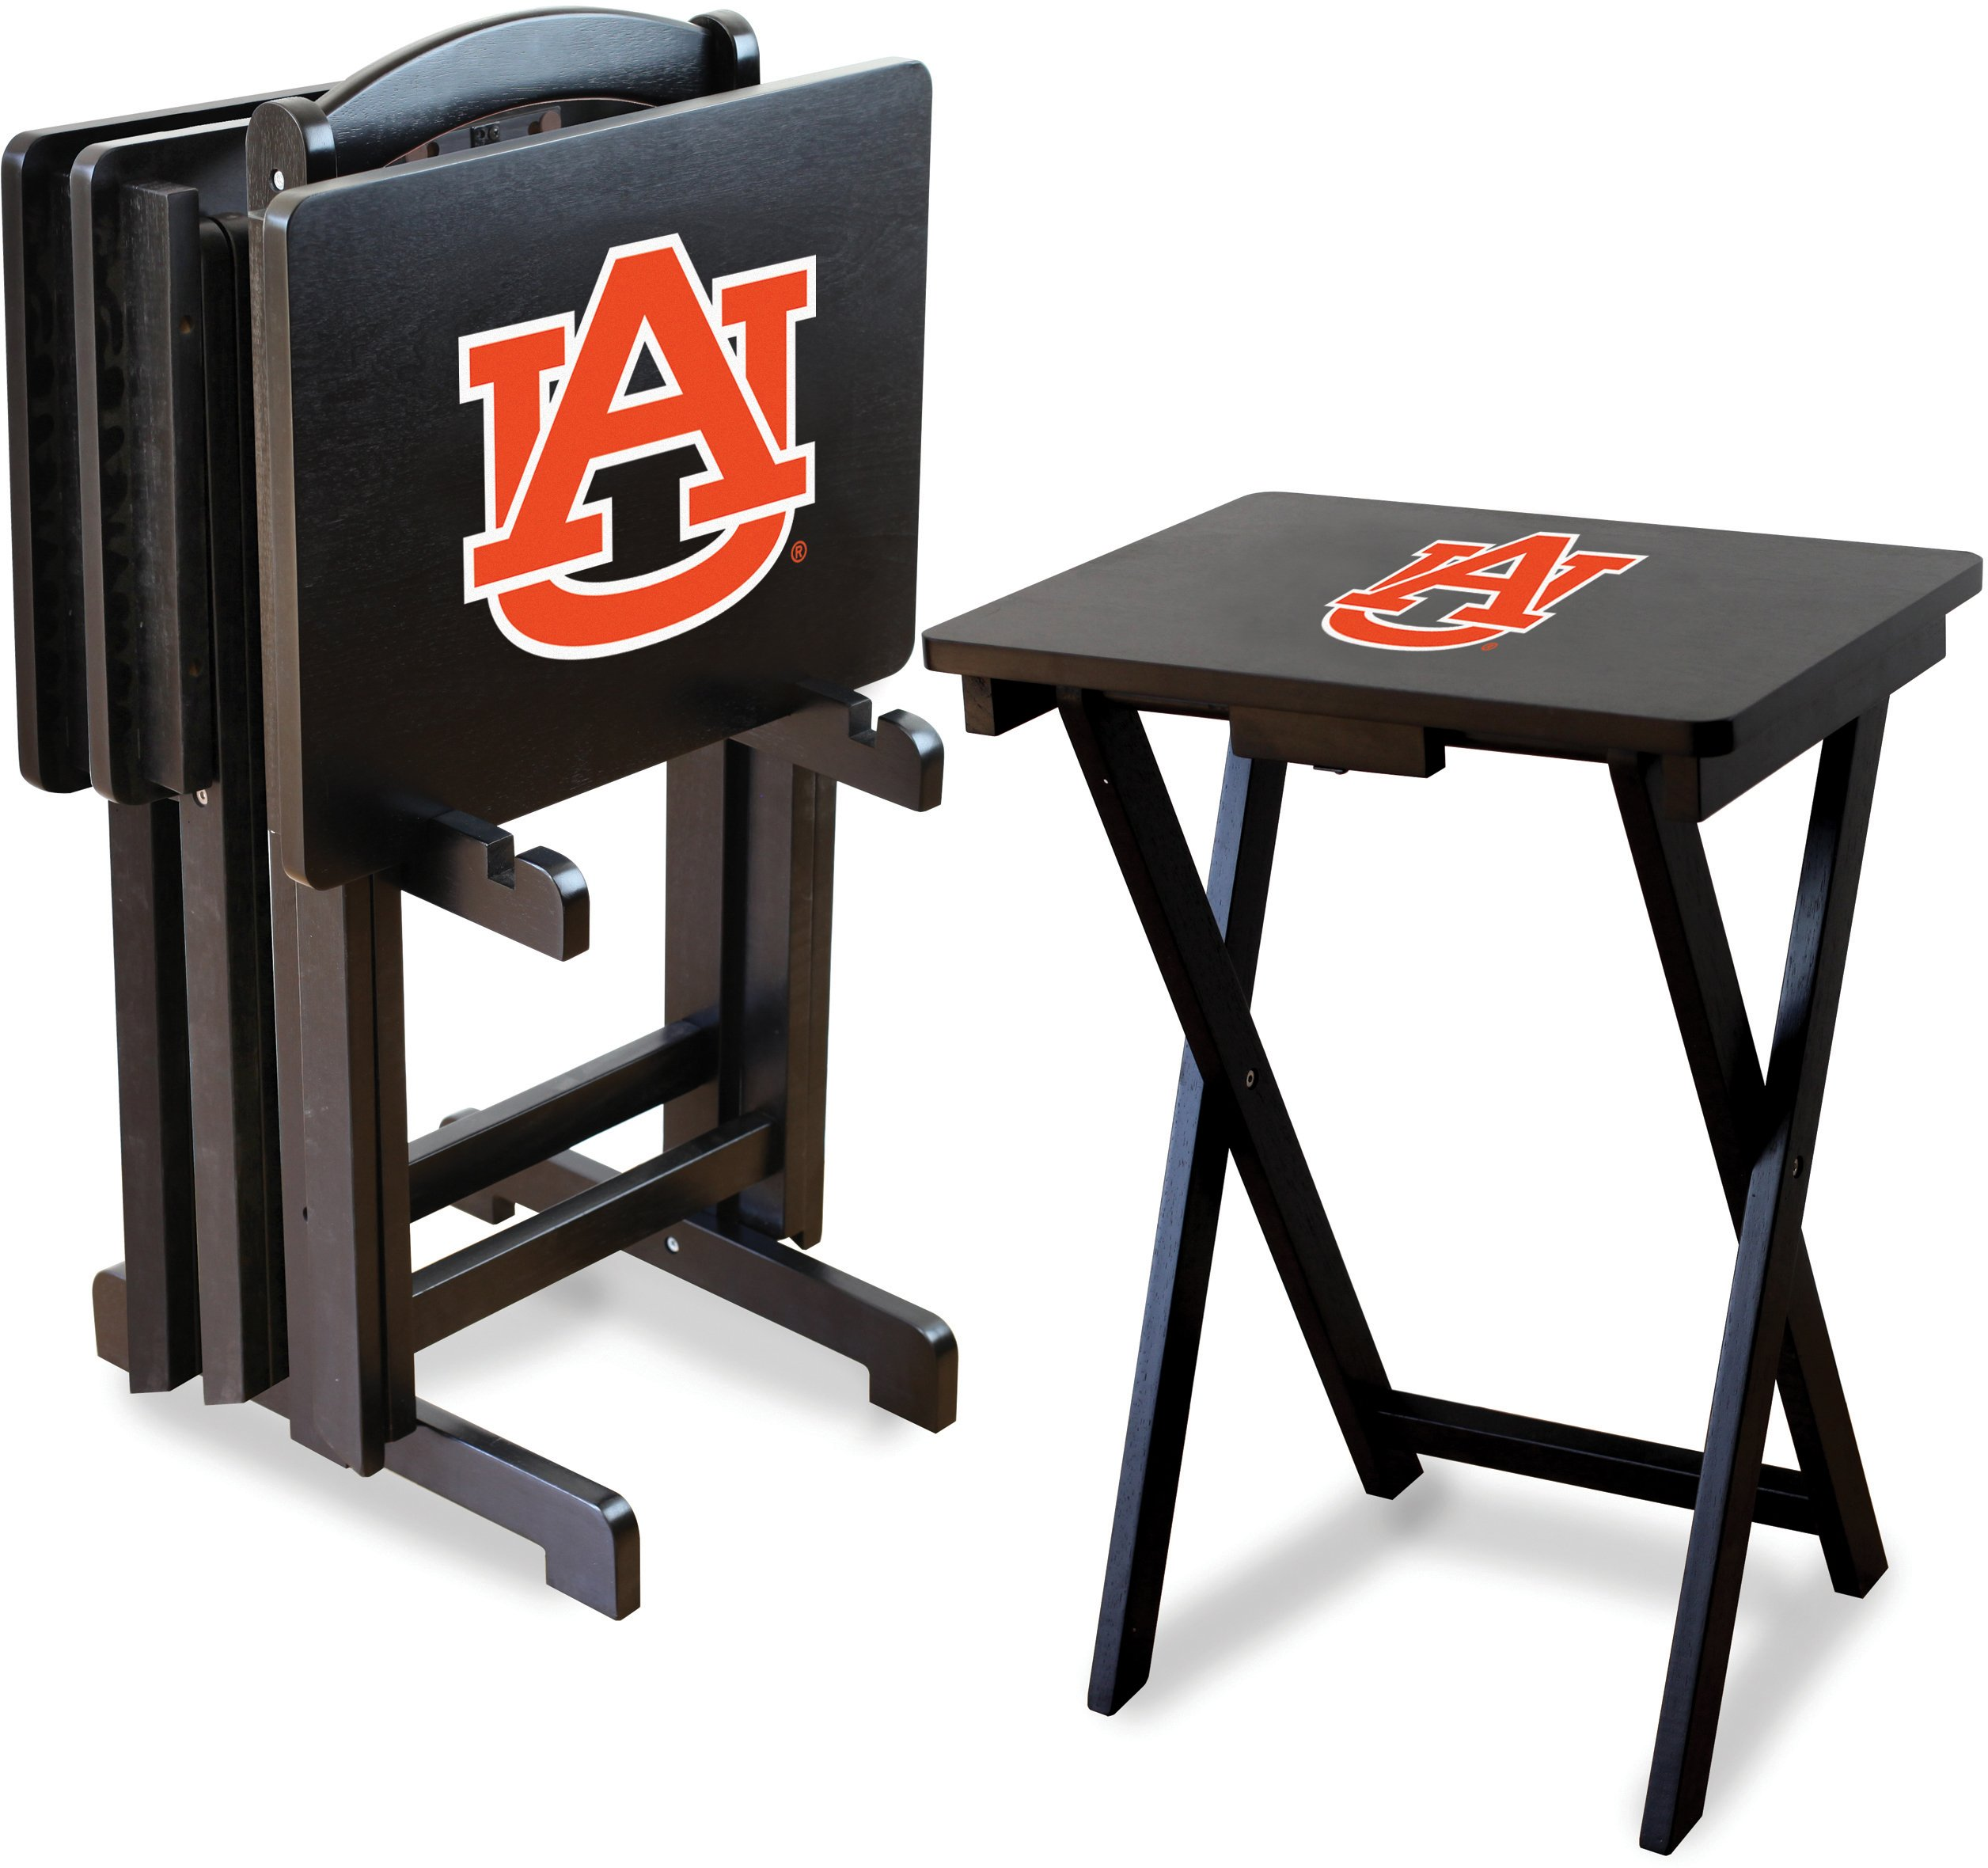 Imperial Officially Licensed NCAA Merchandise: Foldable Wood TV Tray Table Set with Stand, Auburn Tigers by Imperial